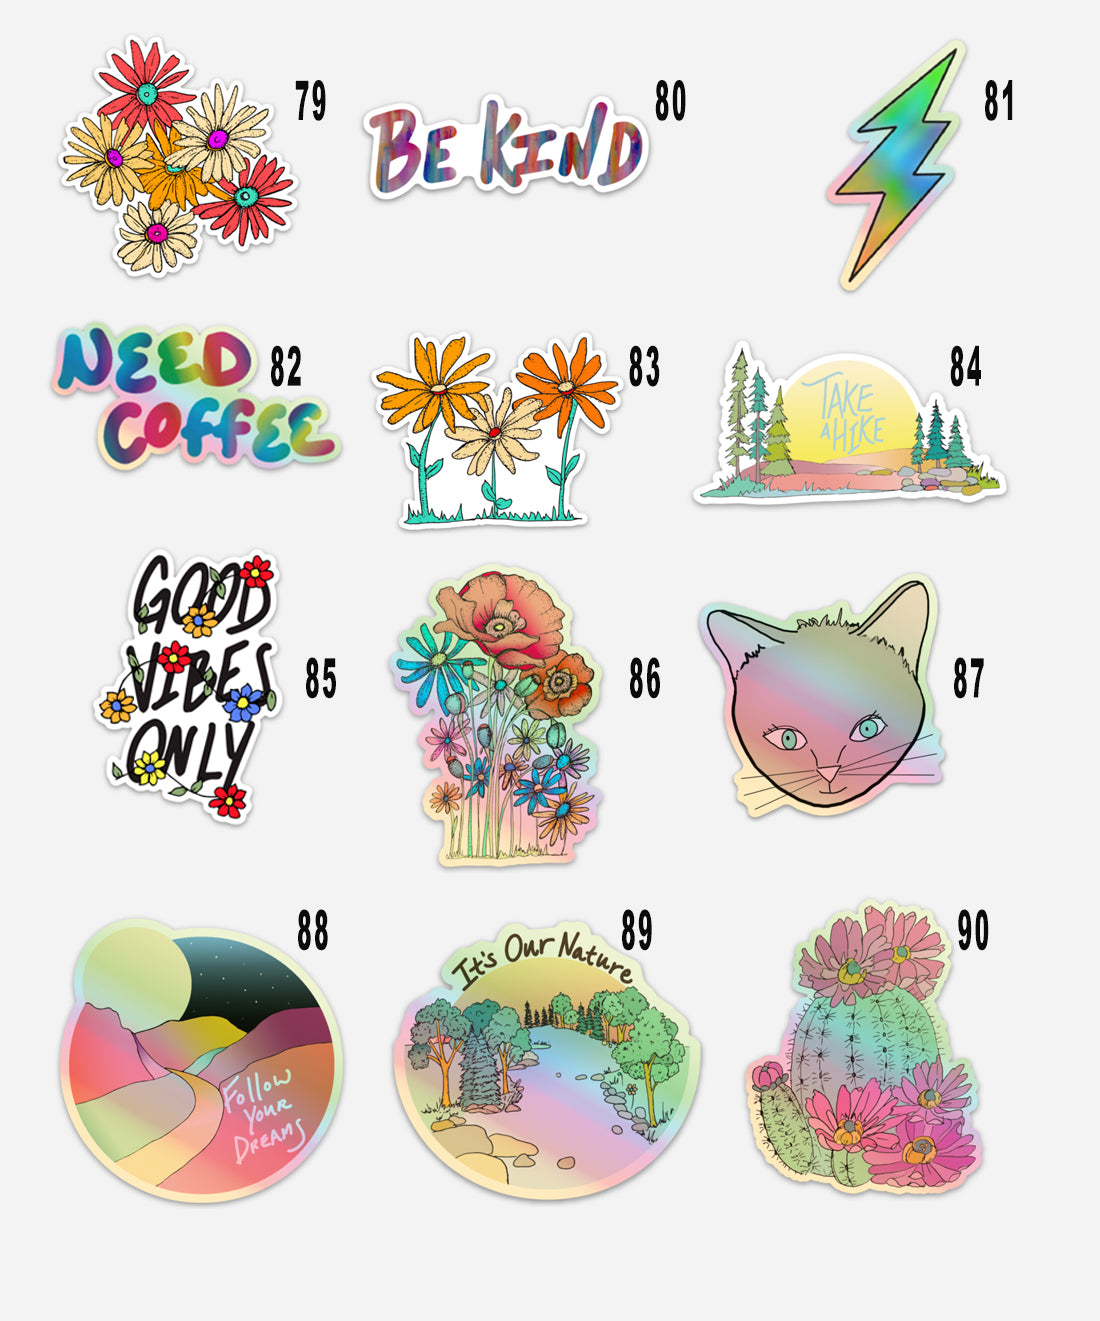 Customizable 3 Sticker Set Gift Pack, 3 Stickers of Your Choice and 1 Hand Drawn Envelope-Vinyl Sticker-Roam Wild Designs